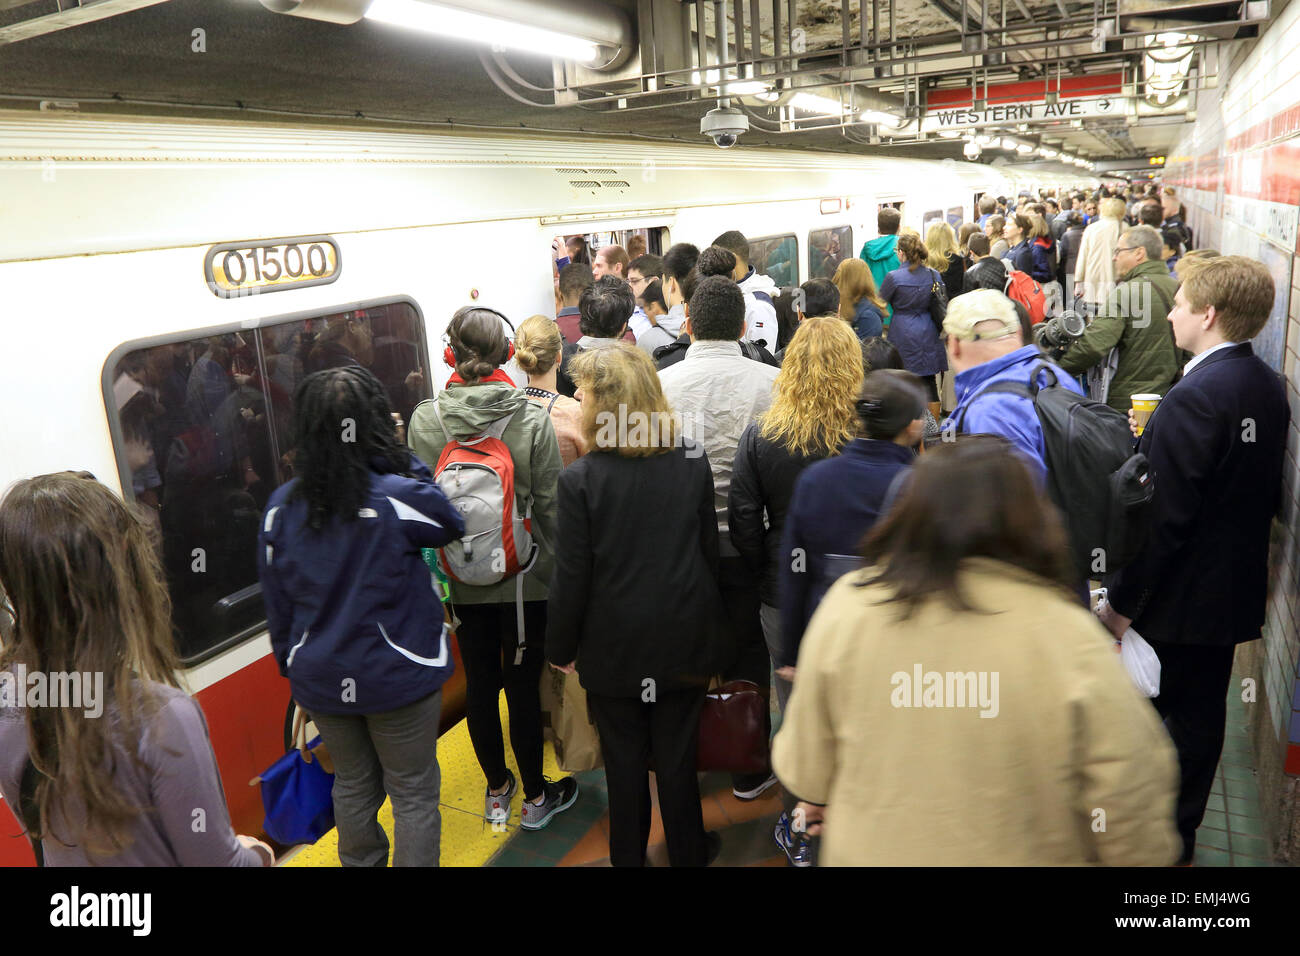 Boston Massachusetts subway with commuters preparing to board  T train on Red line to Alewife. - Stock Image